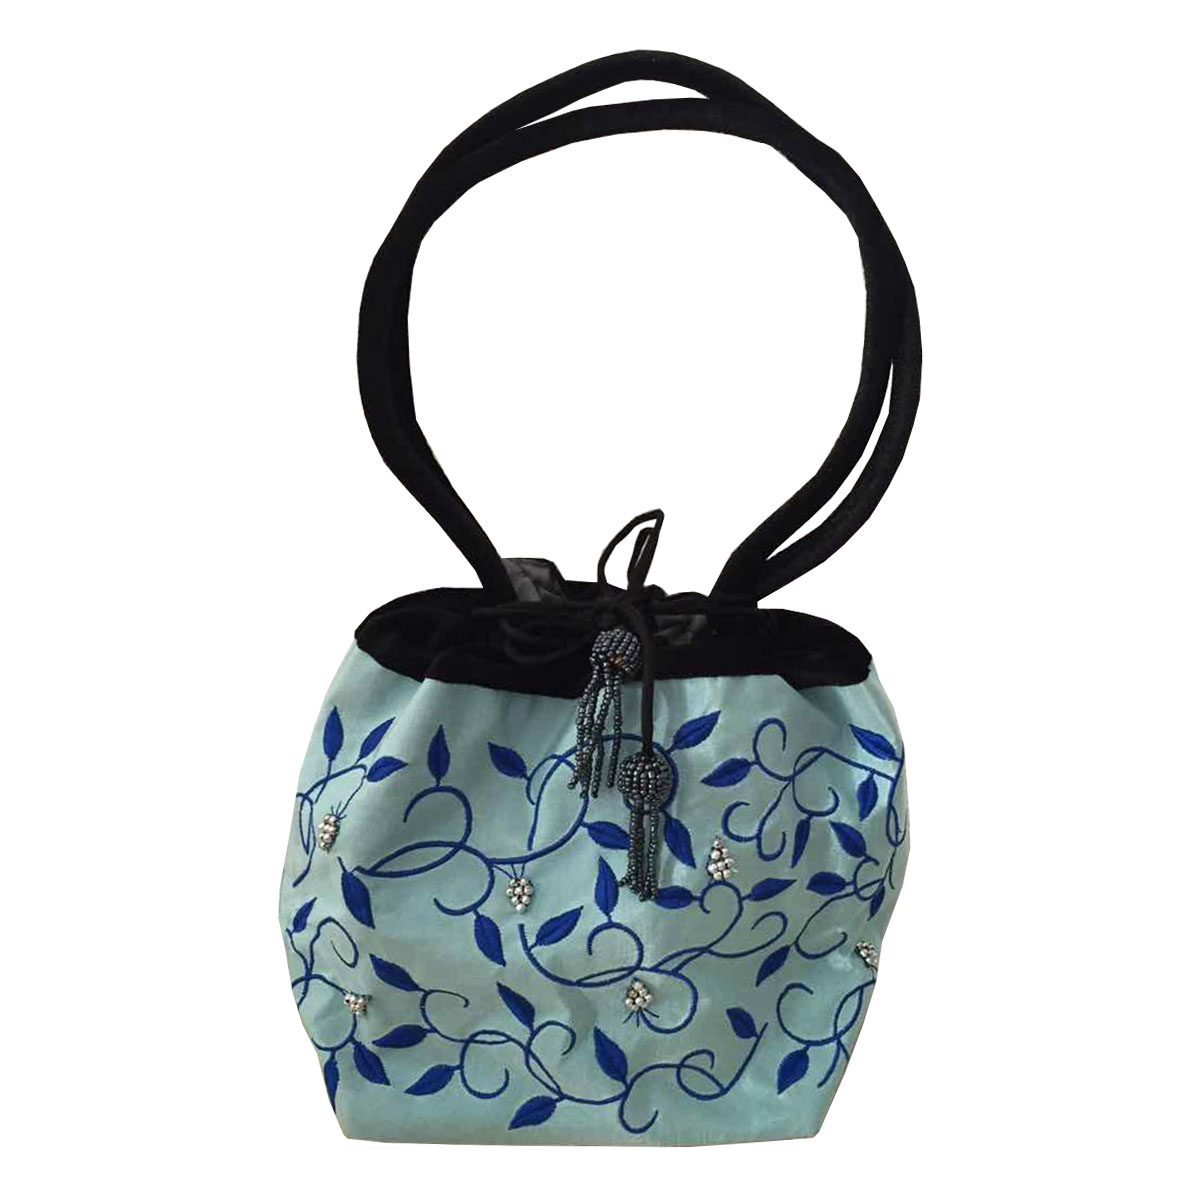 Embroidered taffeta evening bag in light blue